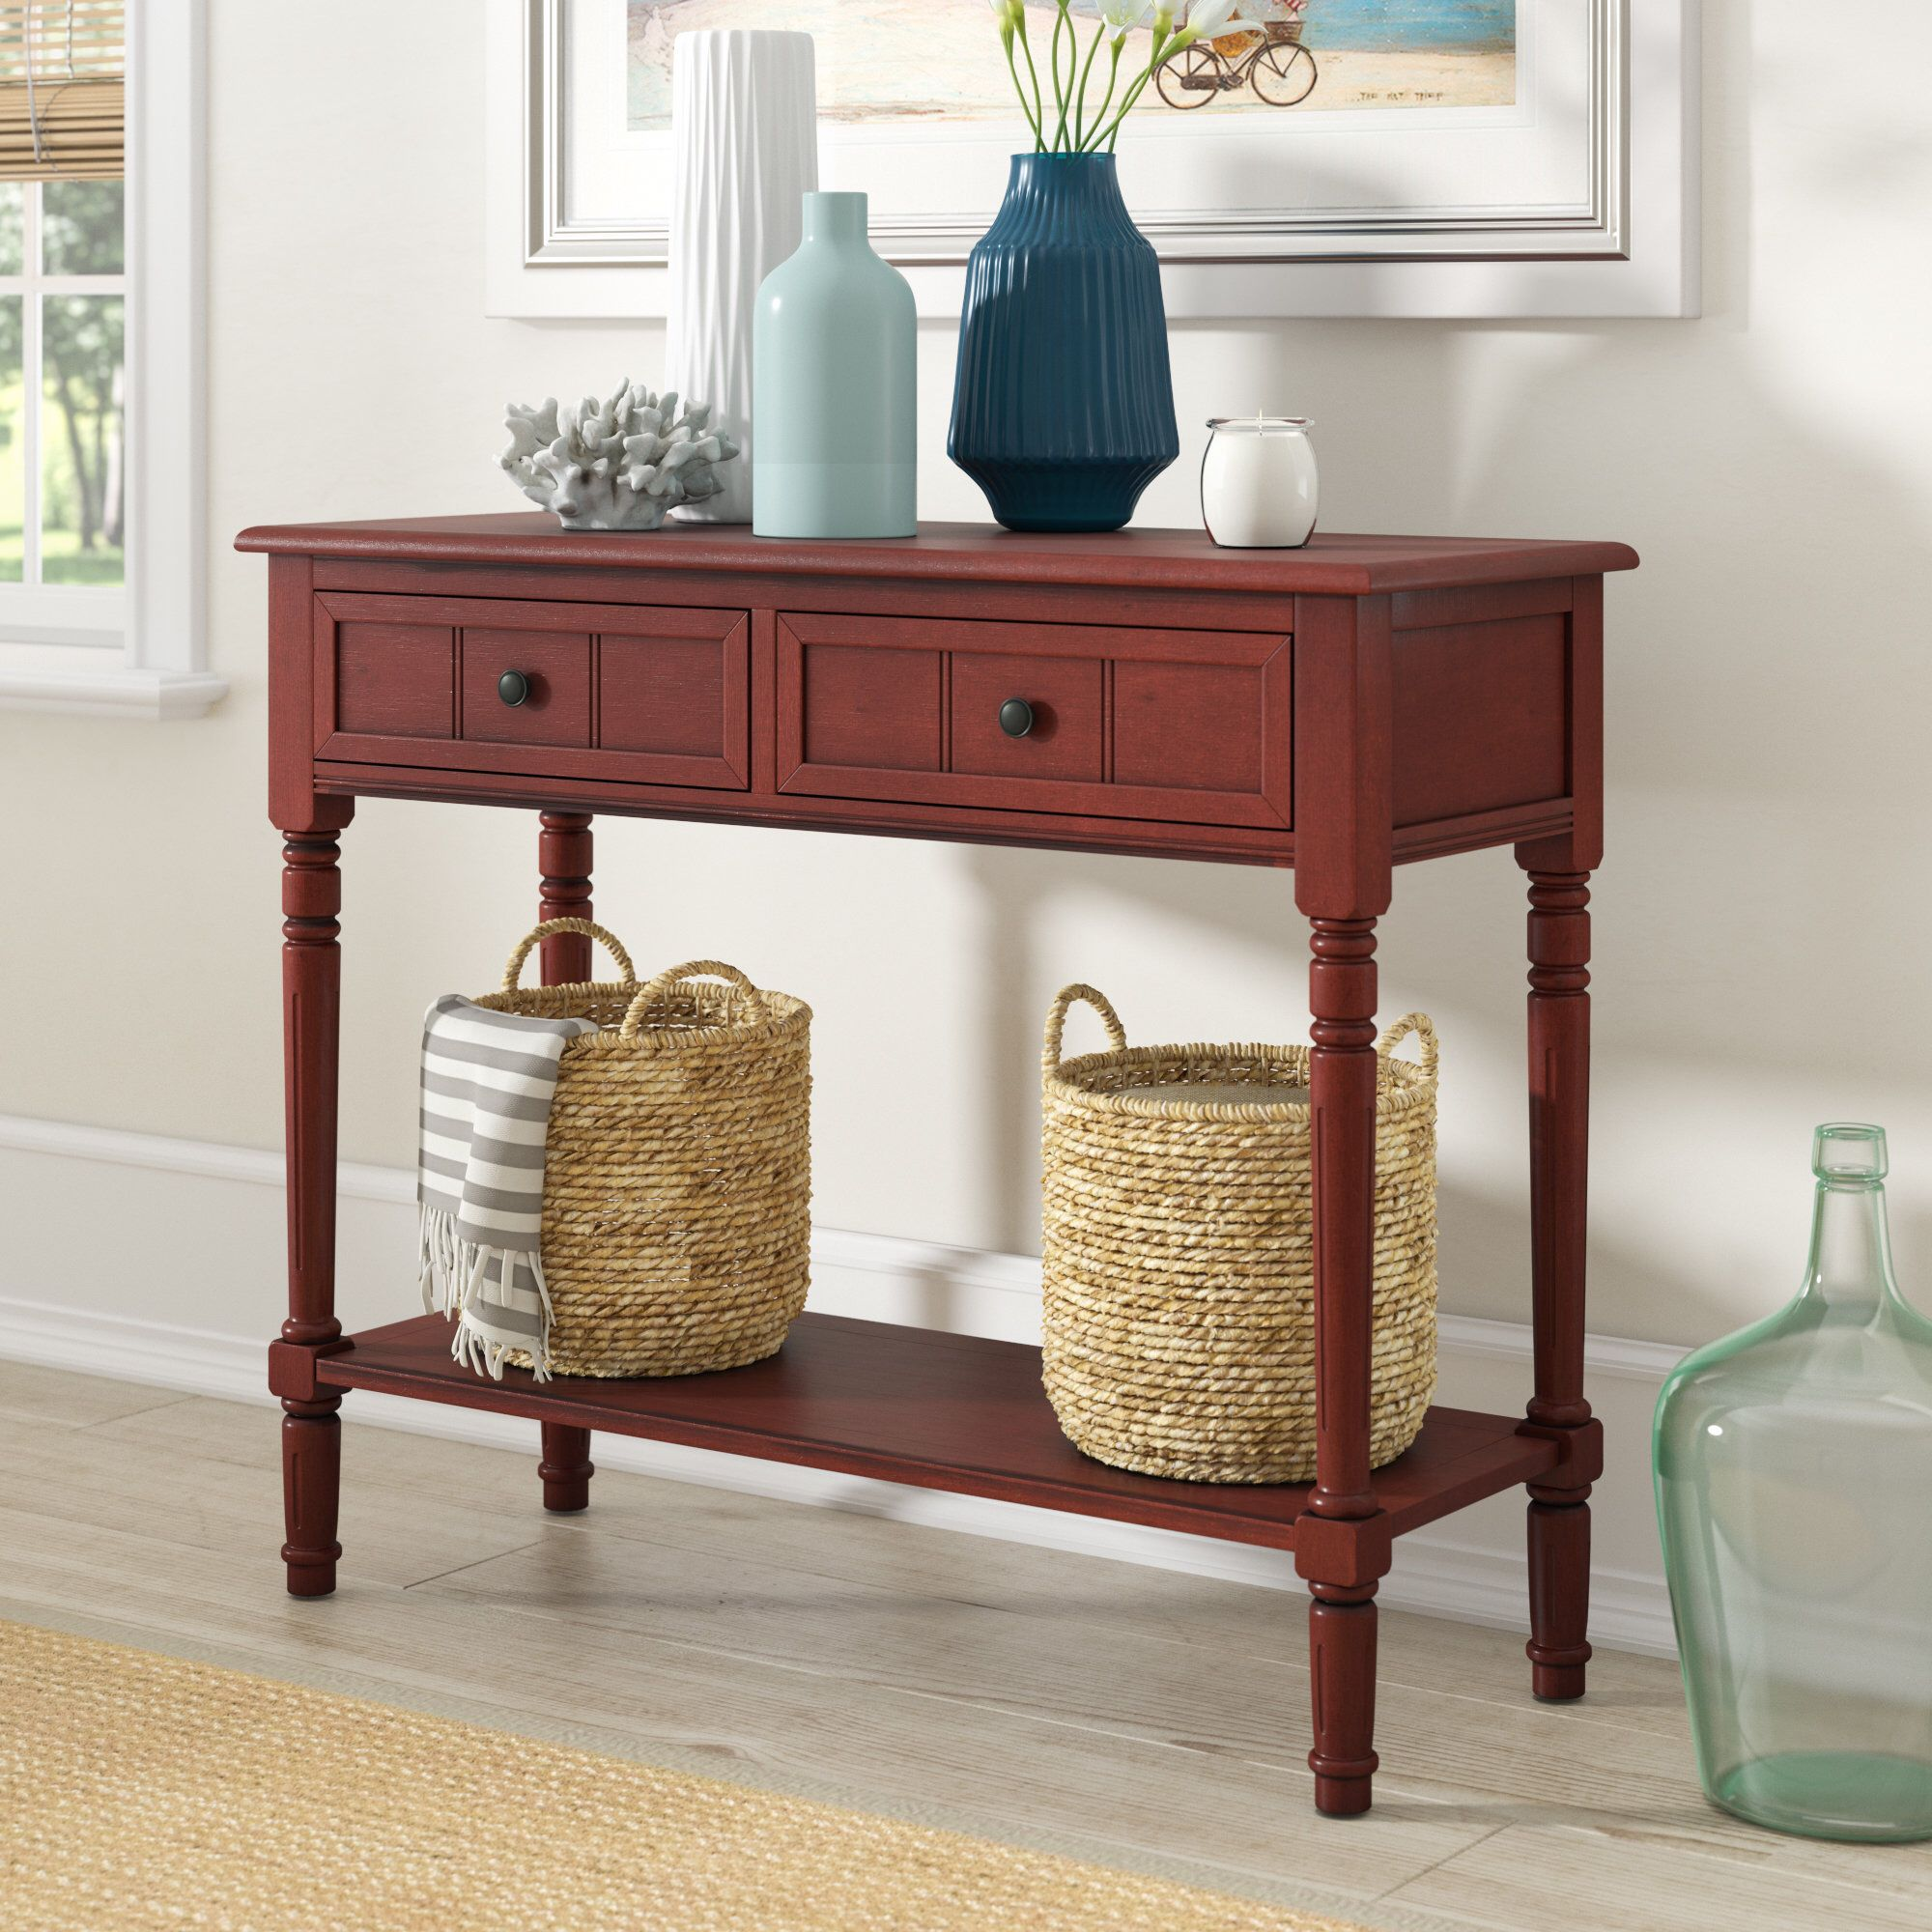 Regan 35 8 Solid Wood Console Table Console Table Decorating Red Console Table Wood Console Table